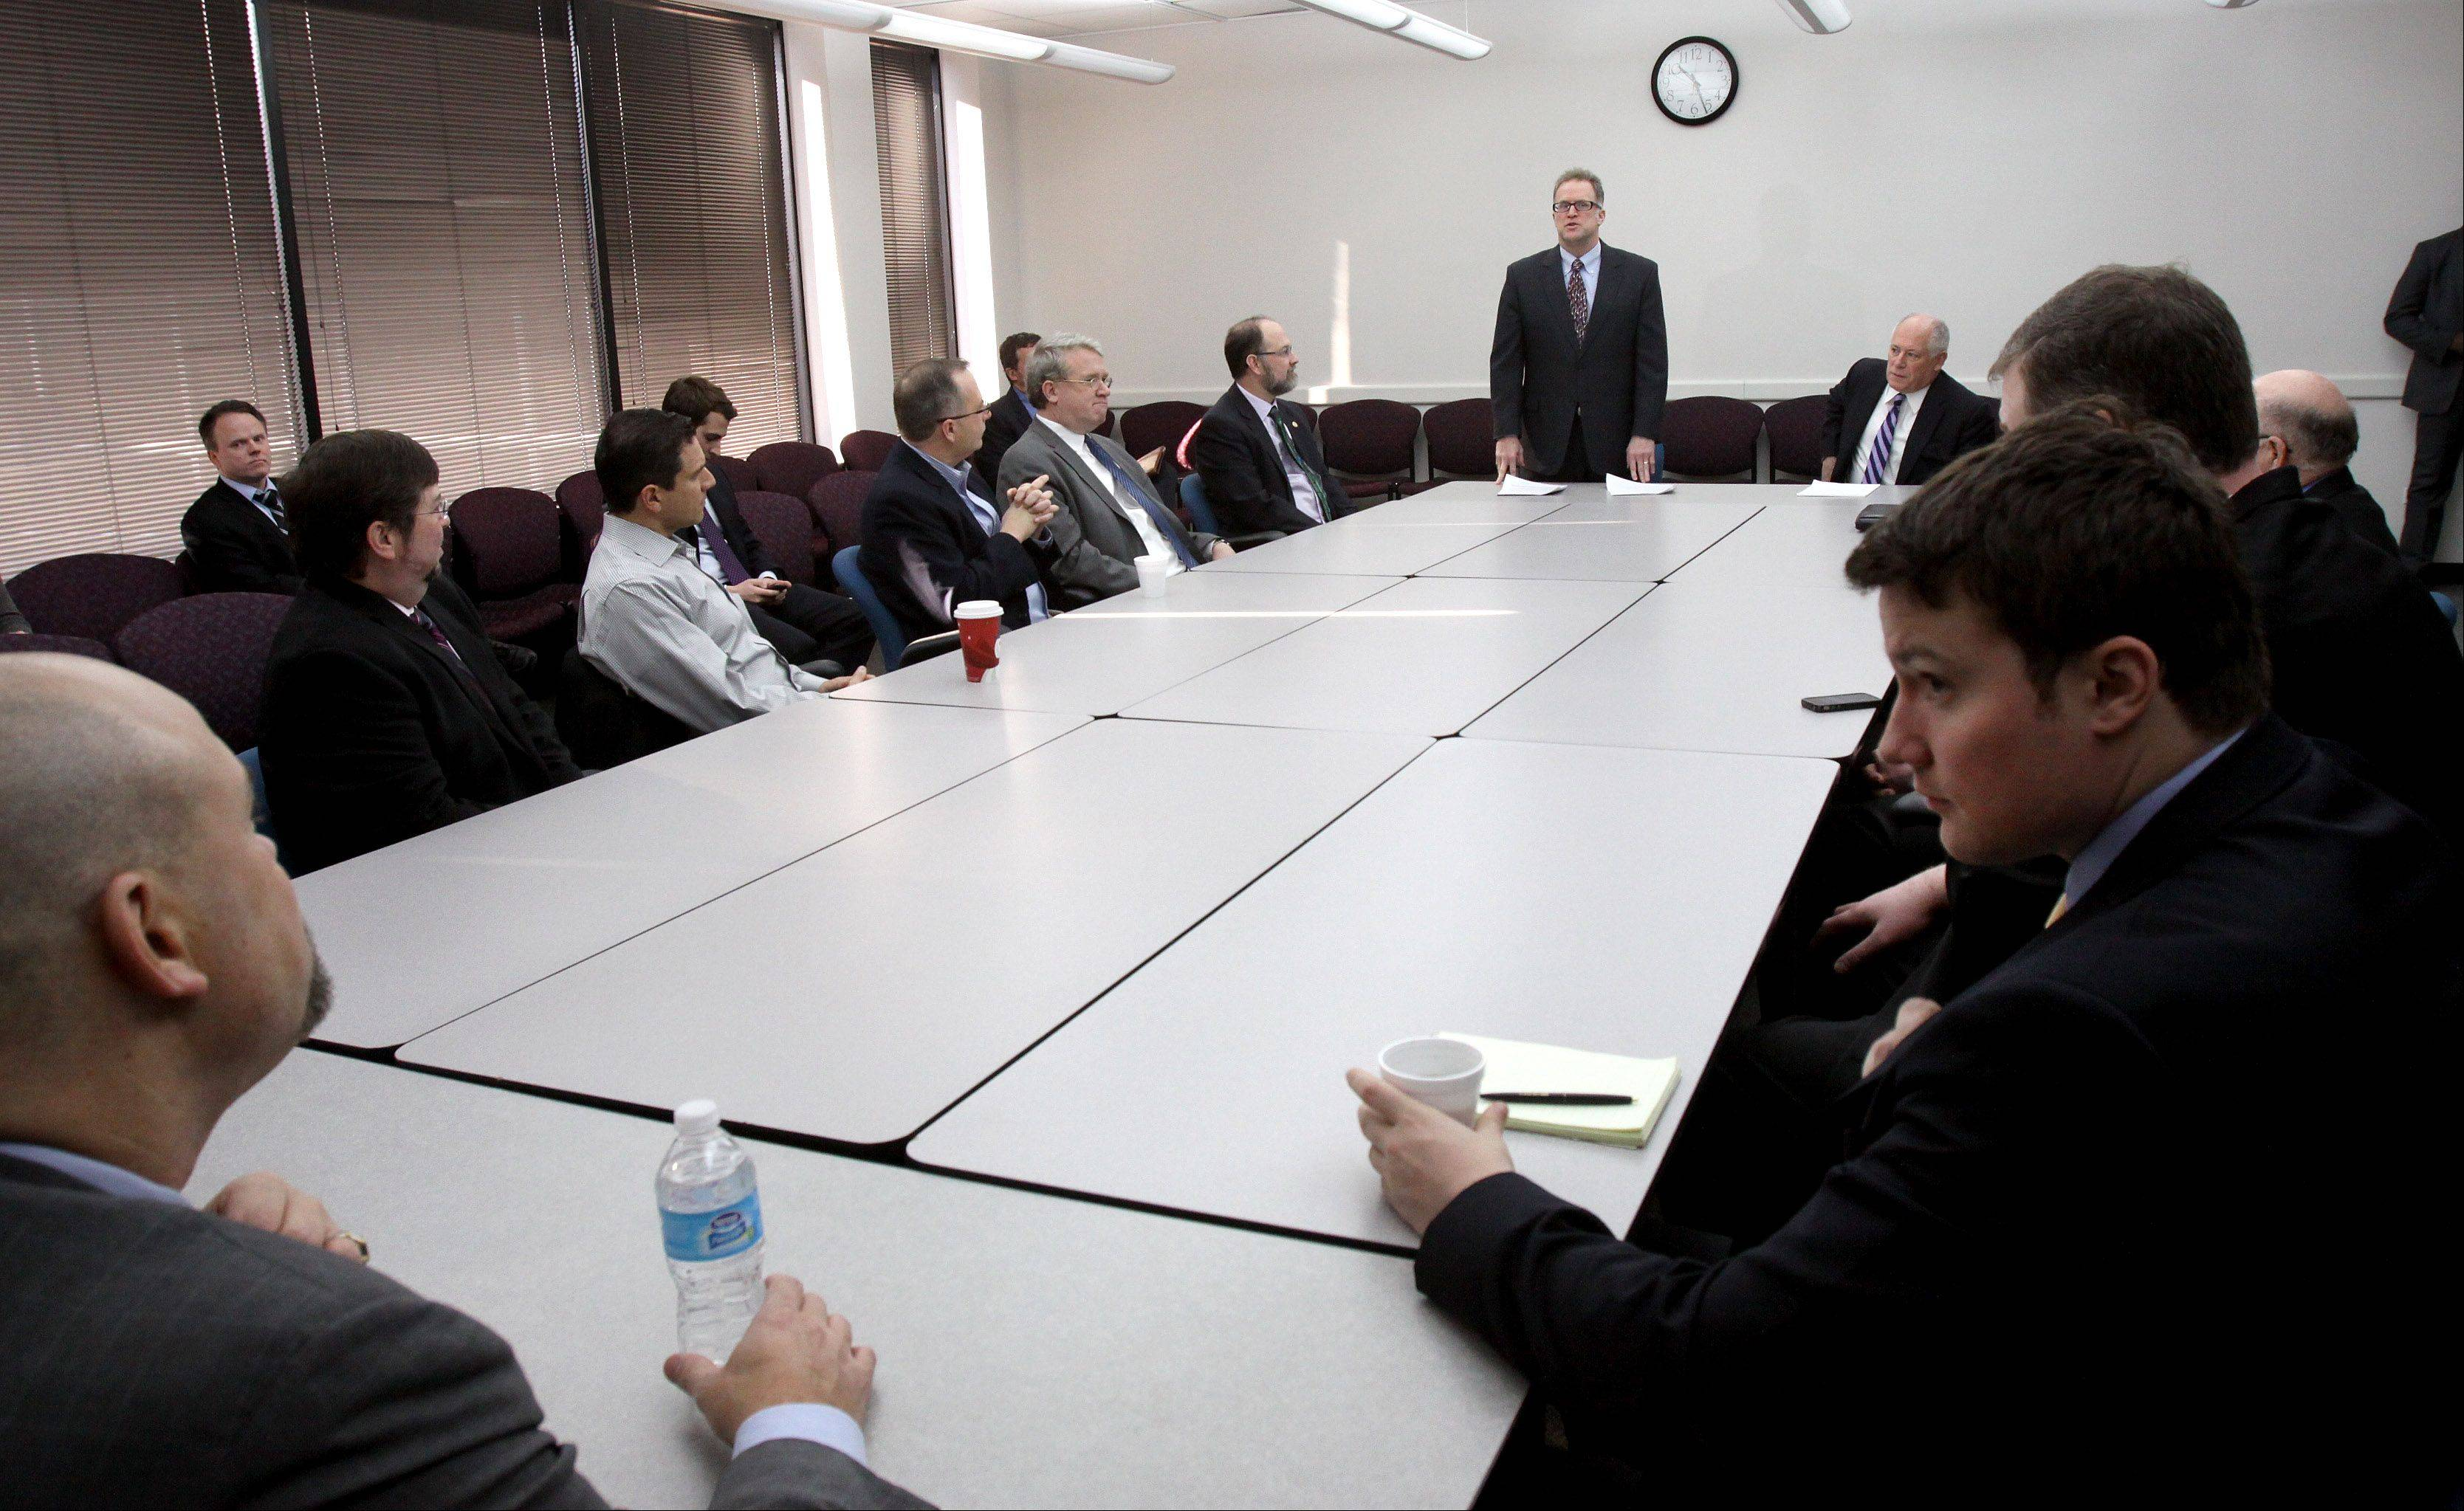 Gov. Pat Quinn and DuPage County Board Chairman Dan Cronin meet with other lawmakers Friday in Wheaton to discuss pension reform.